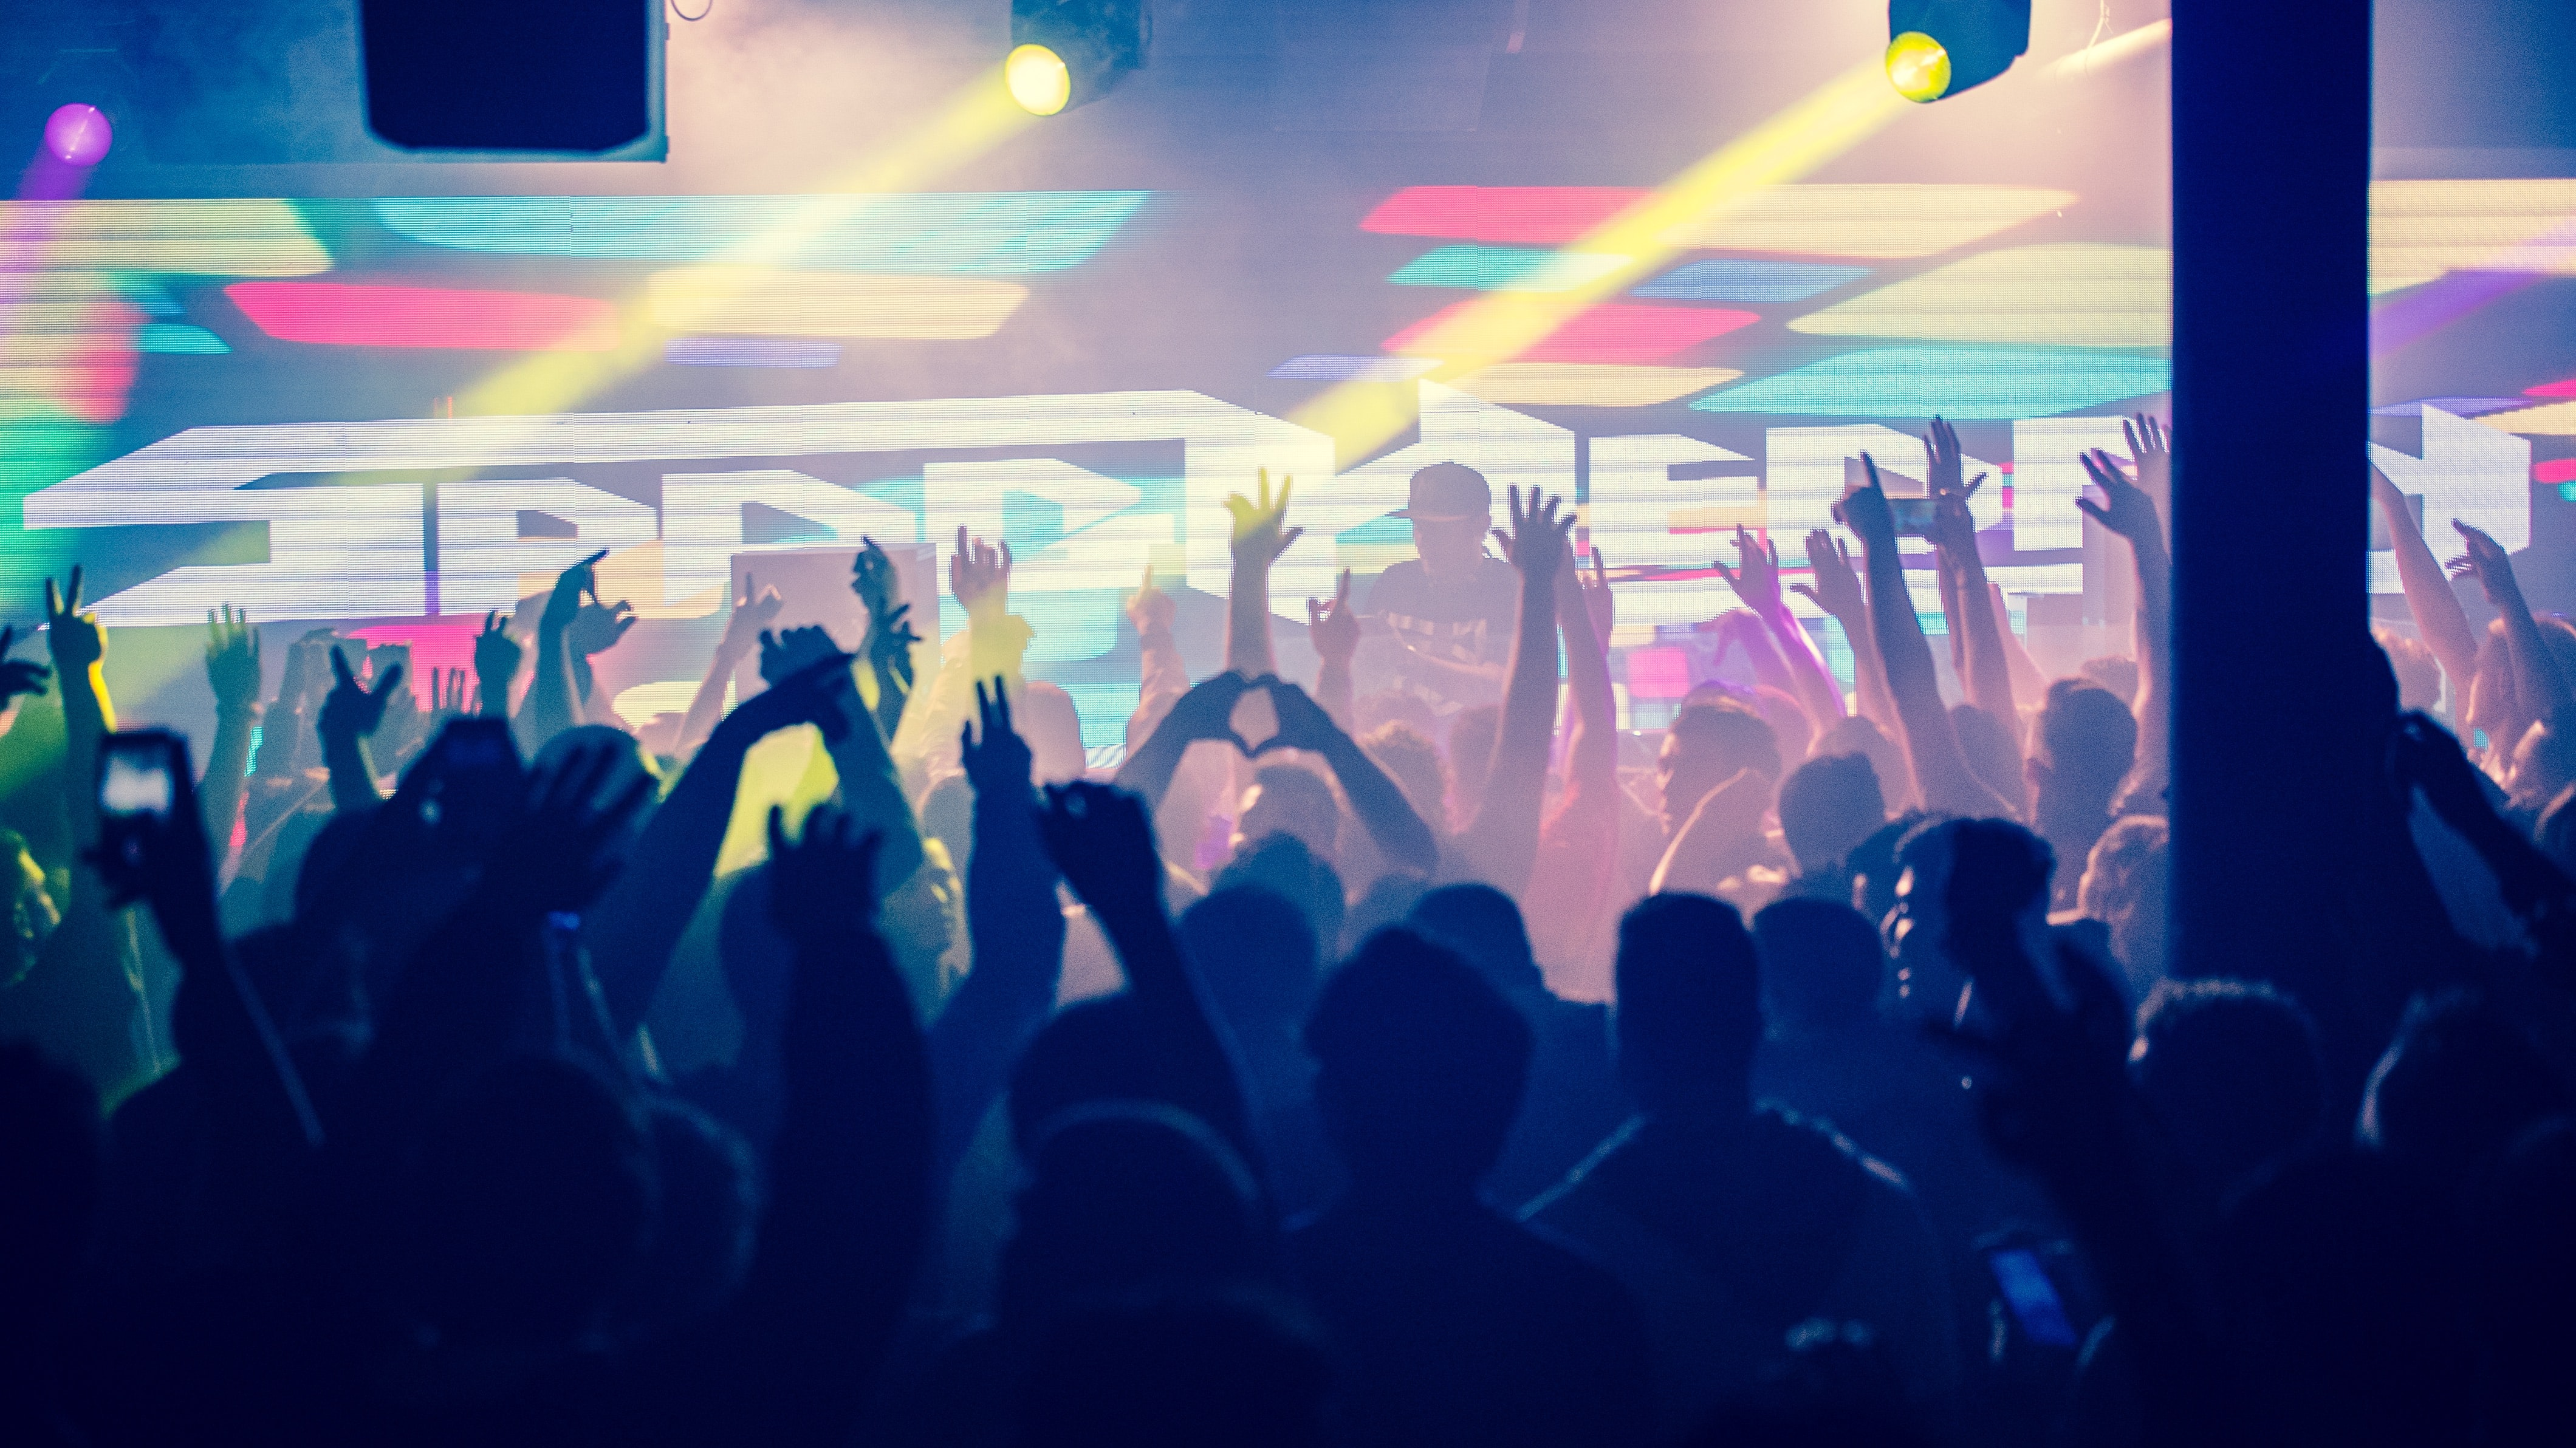 Crowd with raised arms in a colorful club in silhouette